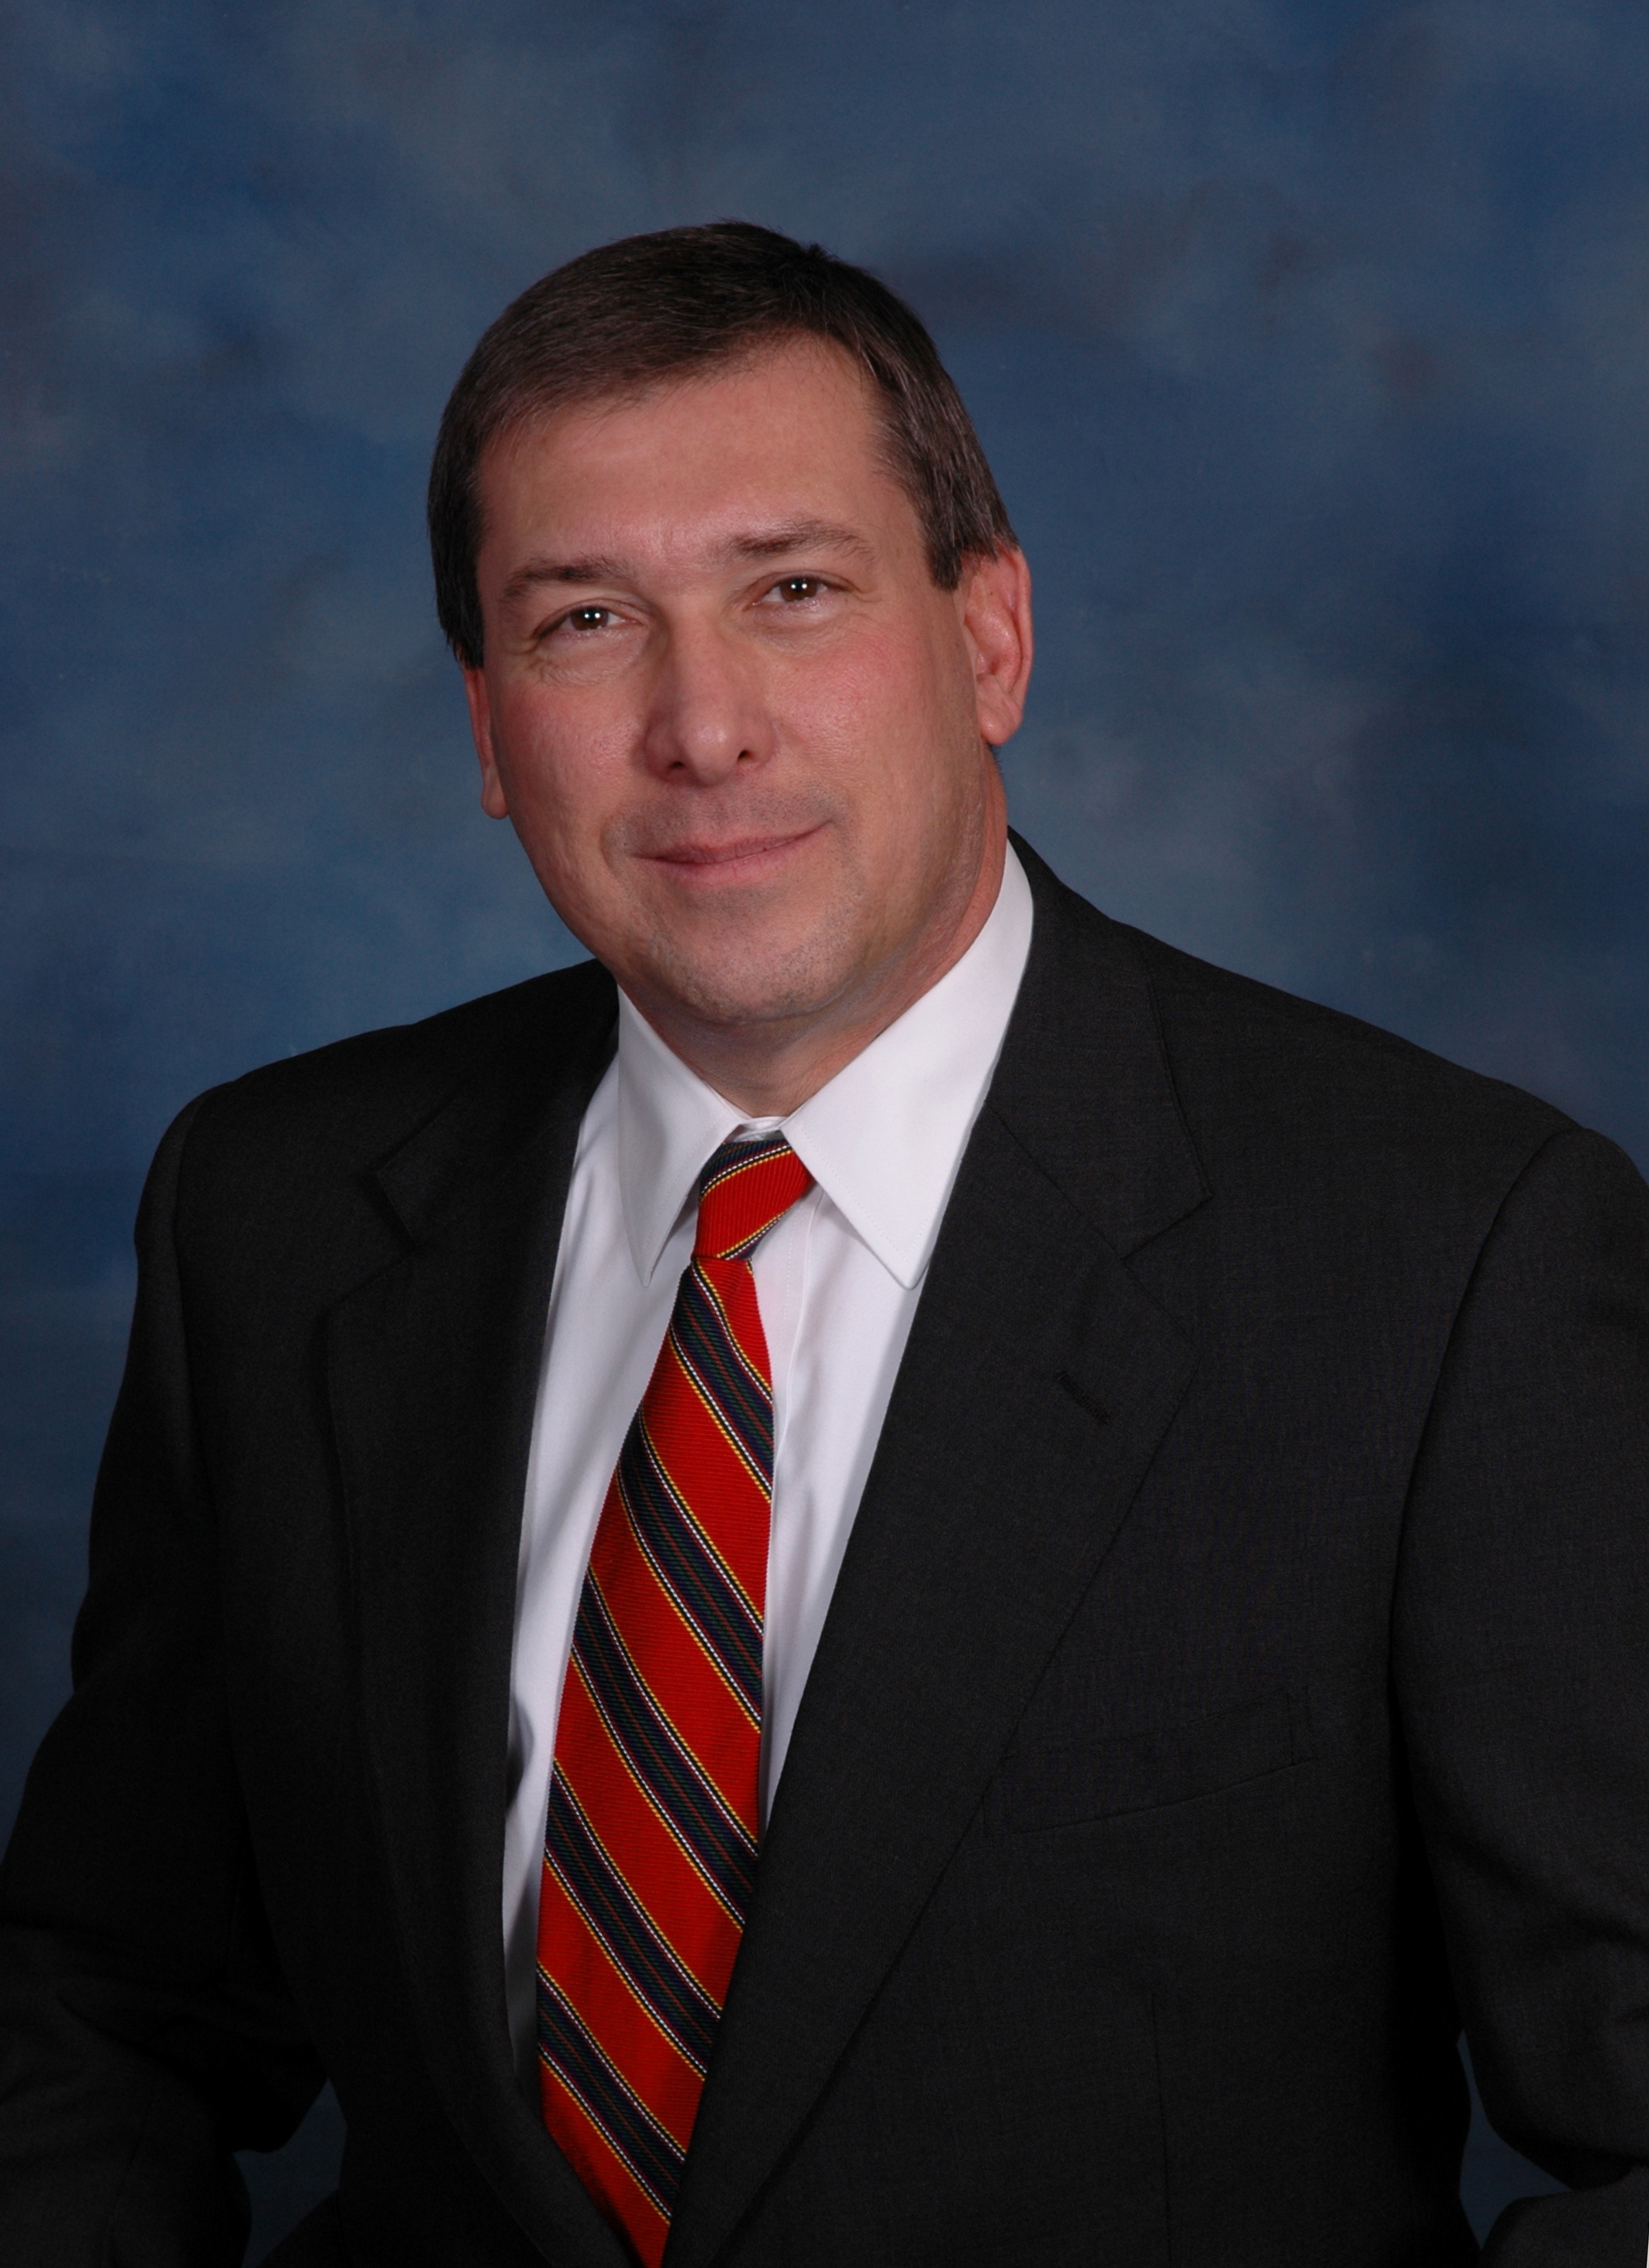 Robert C. Jazwinski, CPA, was elected 2012-2013 president of the Pennsylvania Institute of Certified Public Accountants (PICPA).